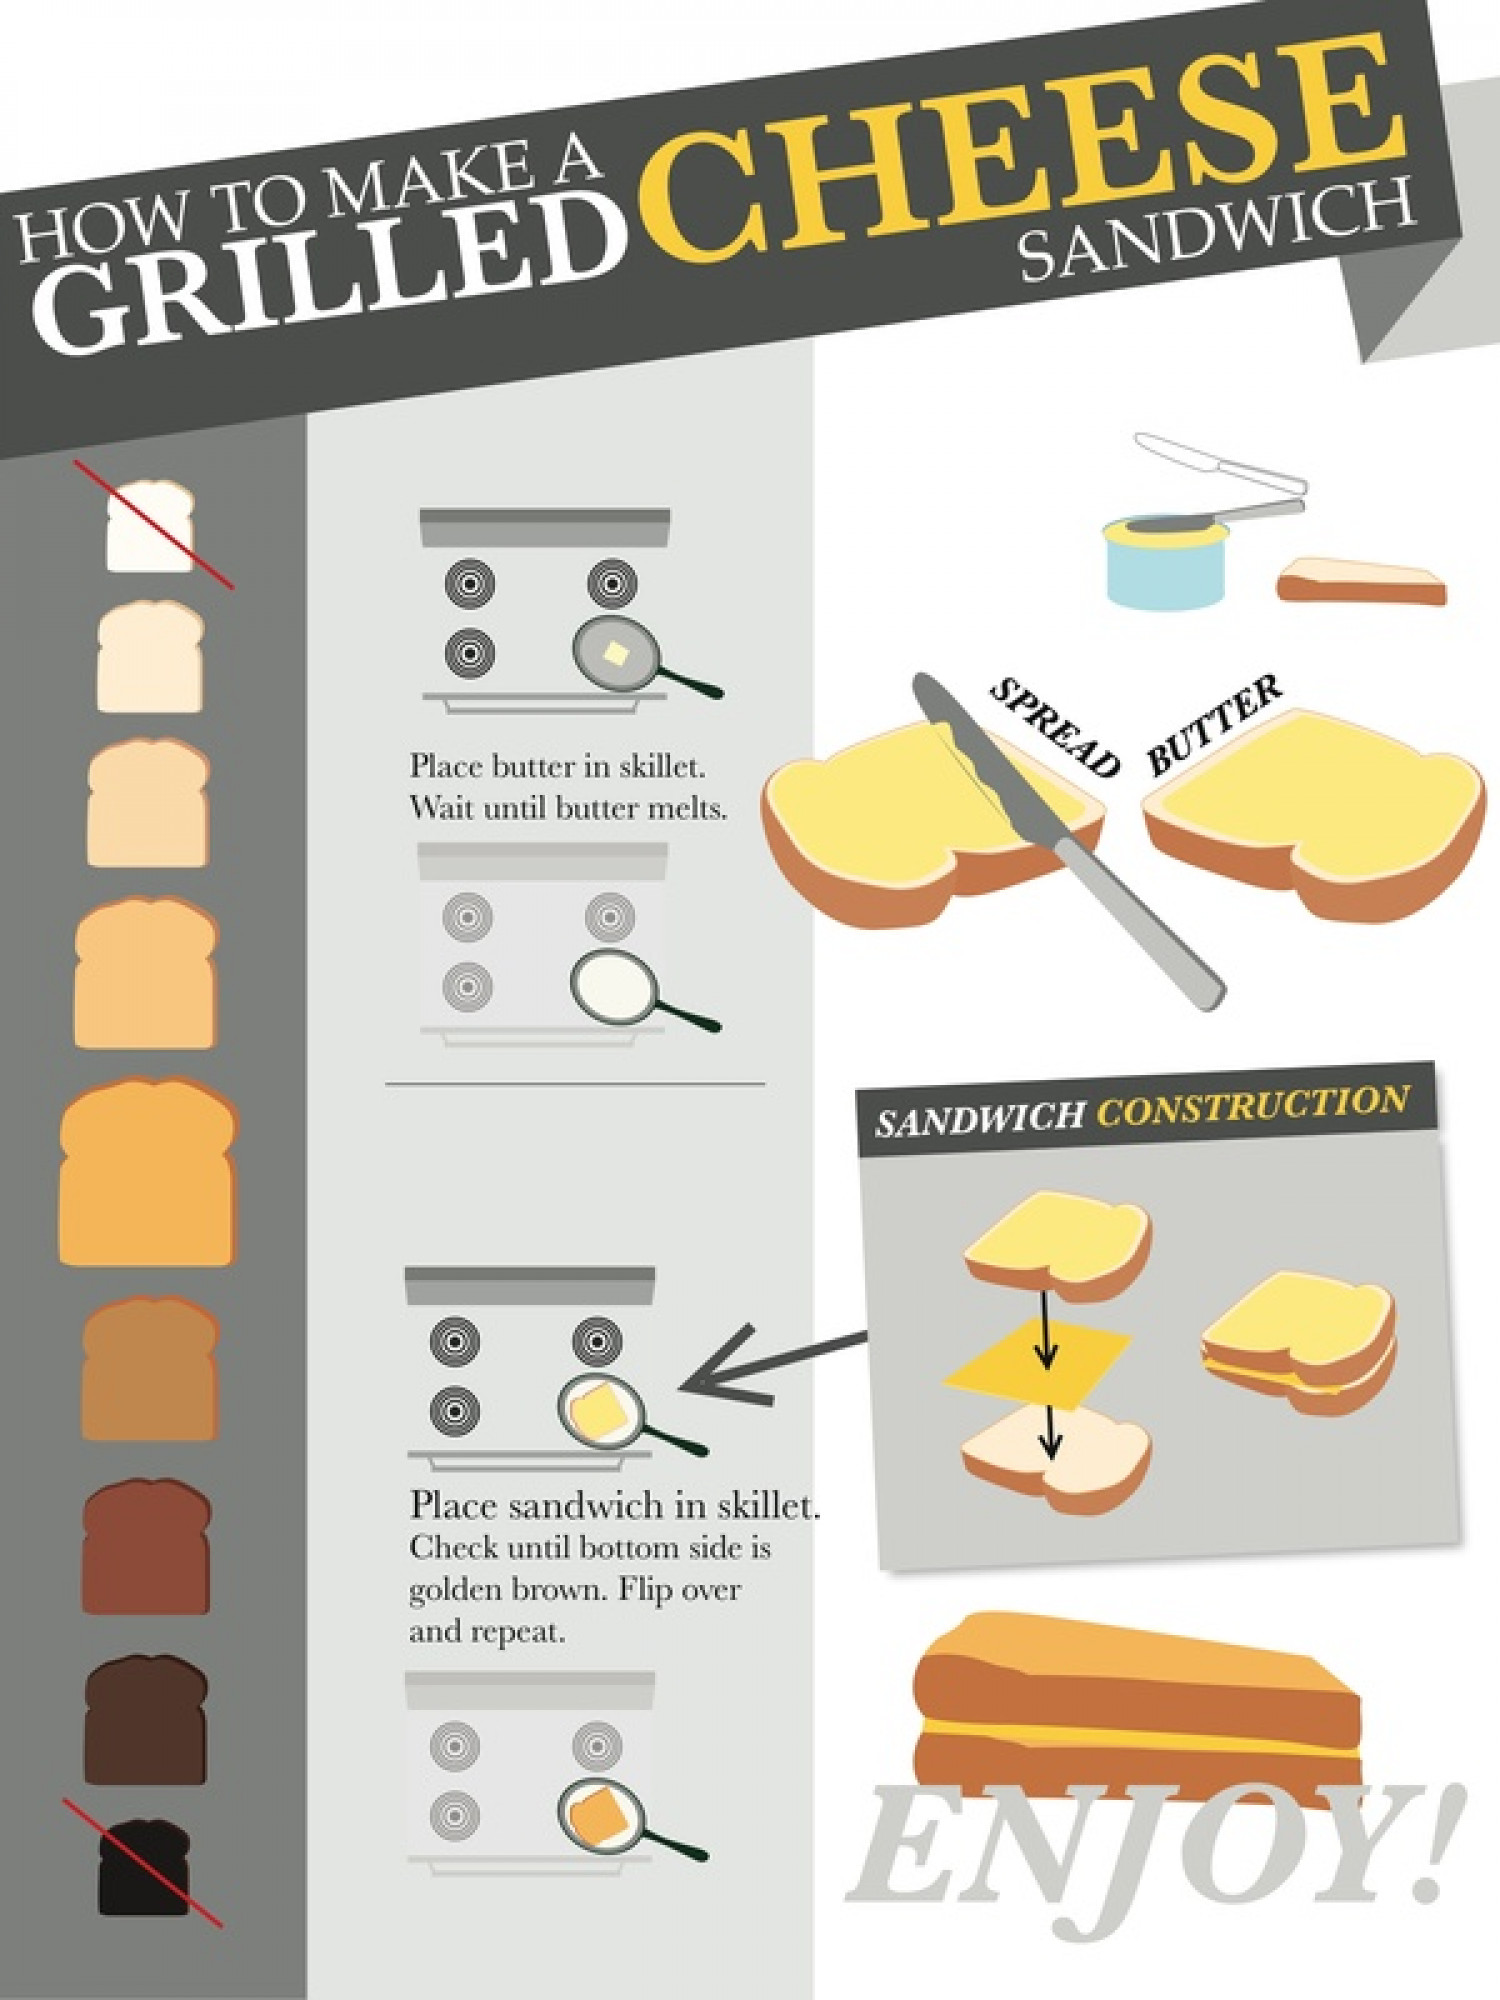 To Make A Grilled Cheese Sandwich Infographic. How To Make The Perfect ...